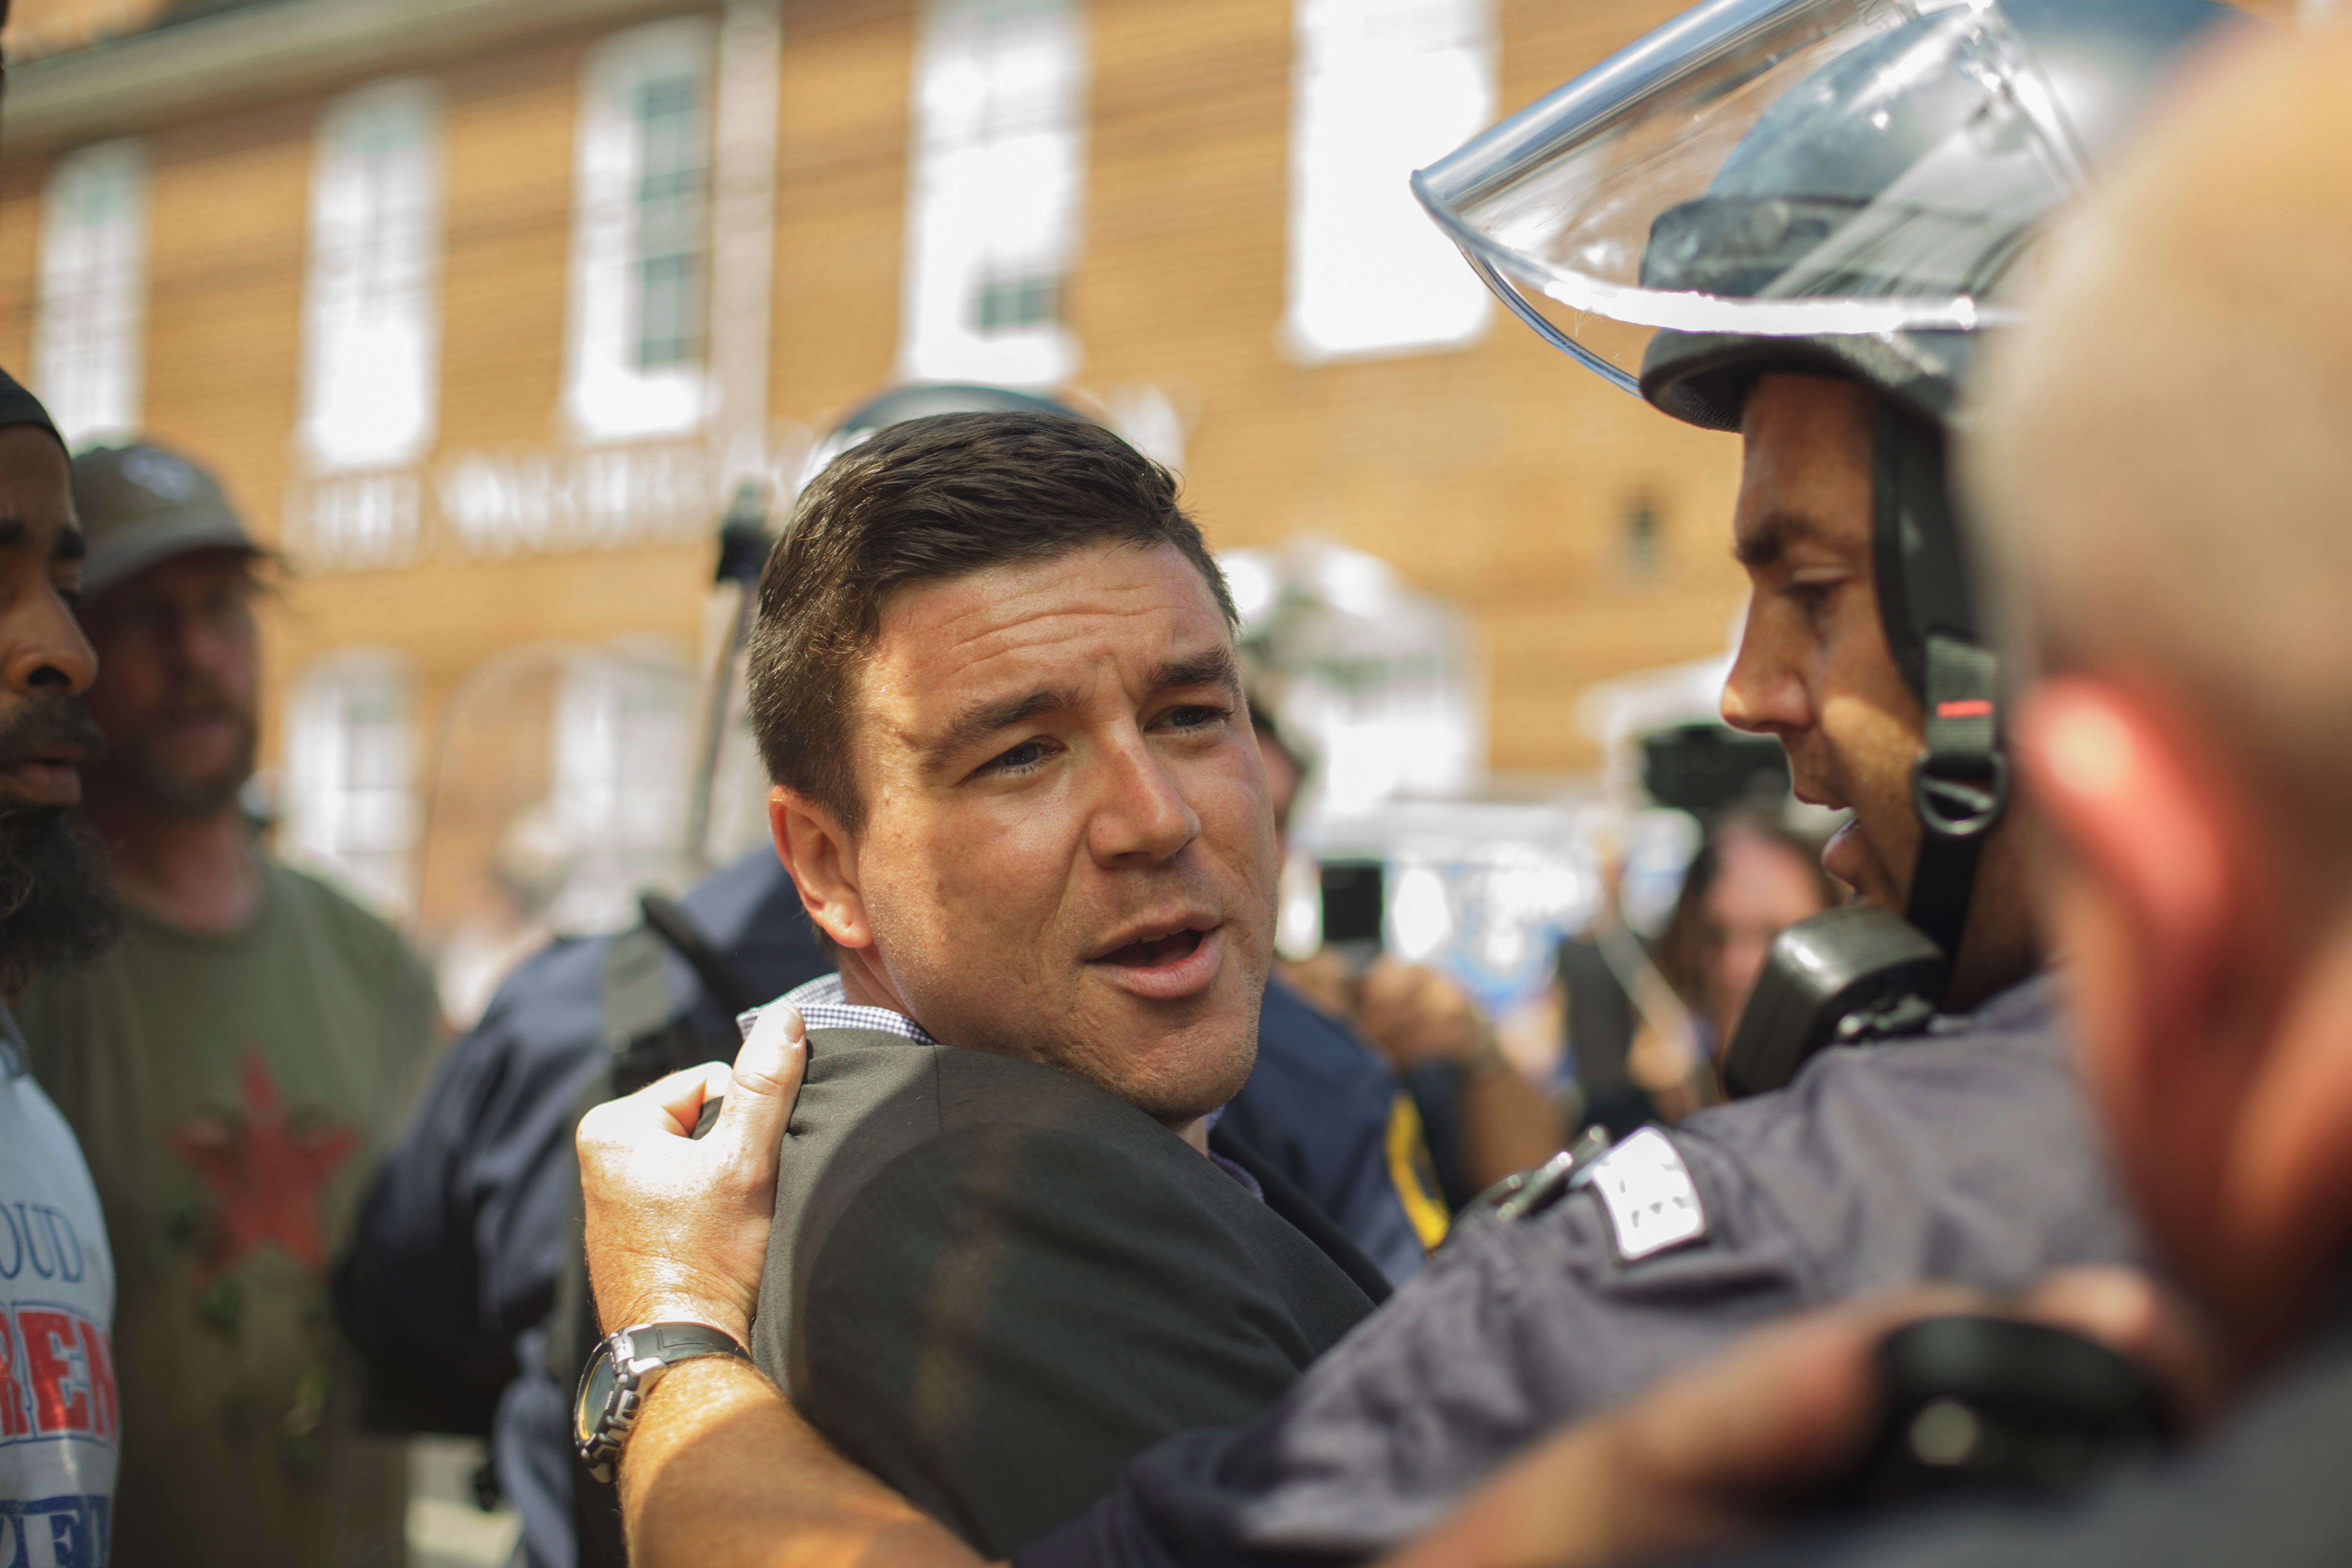 Charlottesville protest organizer indicted on perjury charge